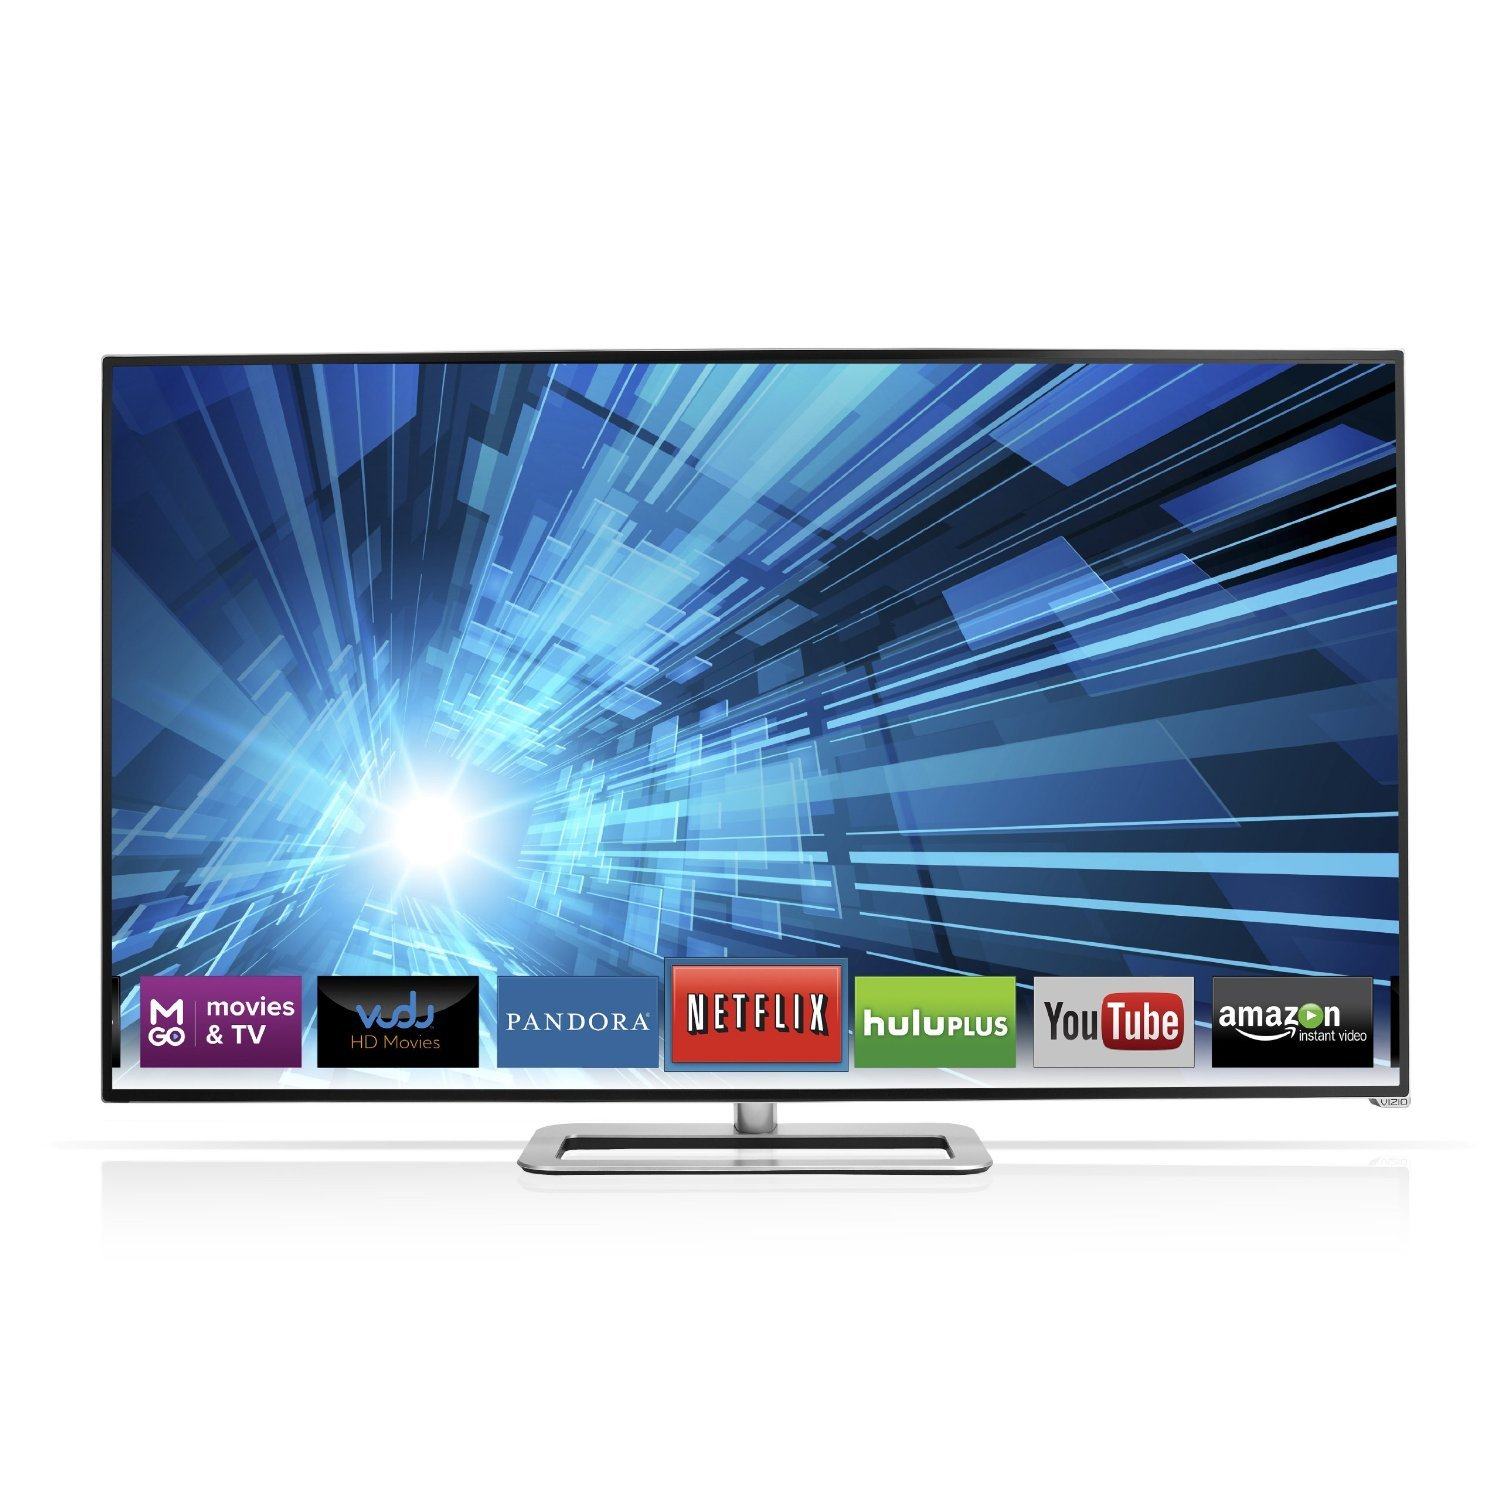 71B 5BwjuWL._SL1500_ amazon com vizio m601d a3r 60 inch 1080p 3d smart led hdtv (2013 42 Inch Vizio Wall Mount at fashall.co